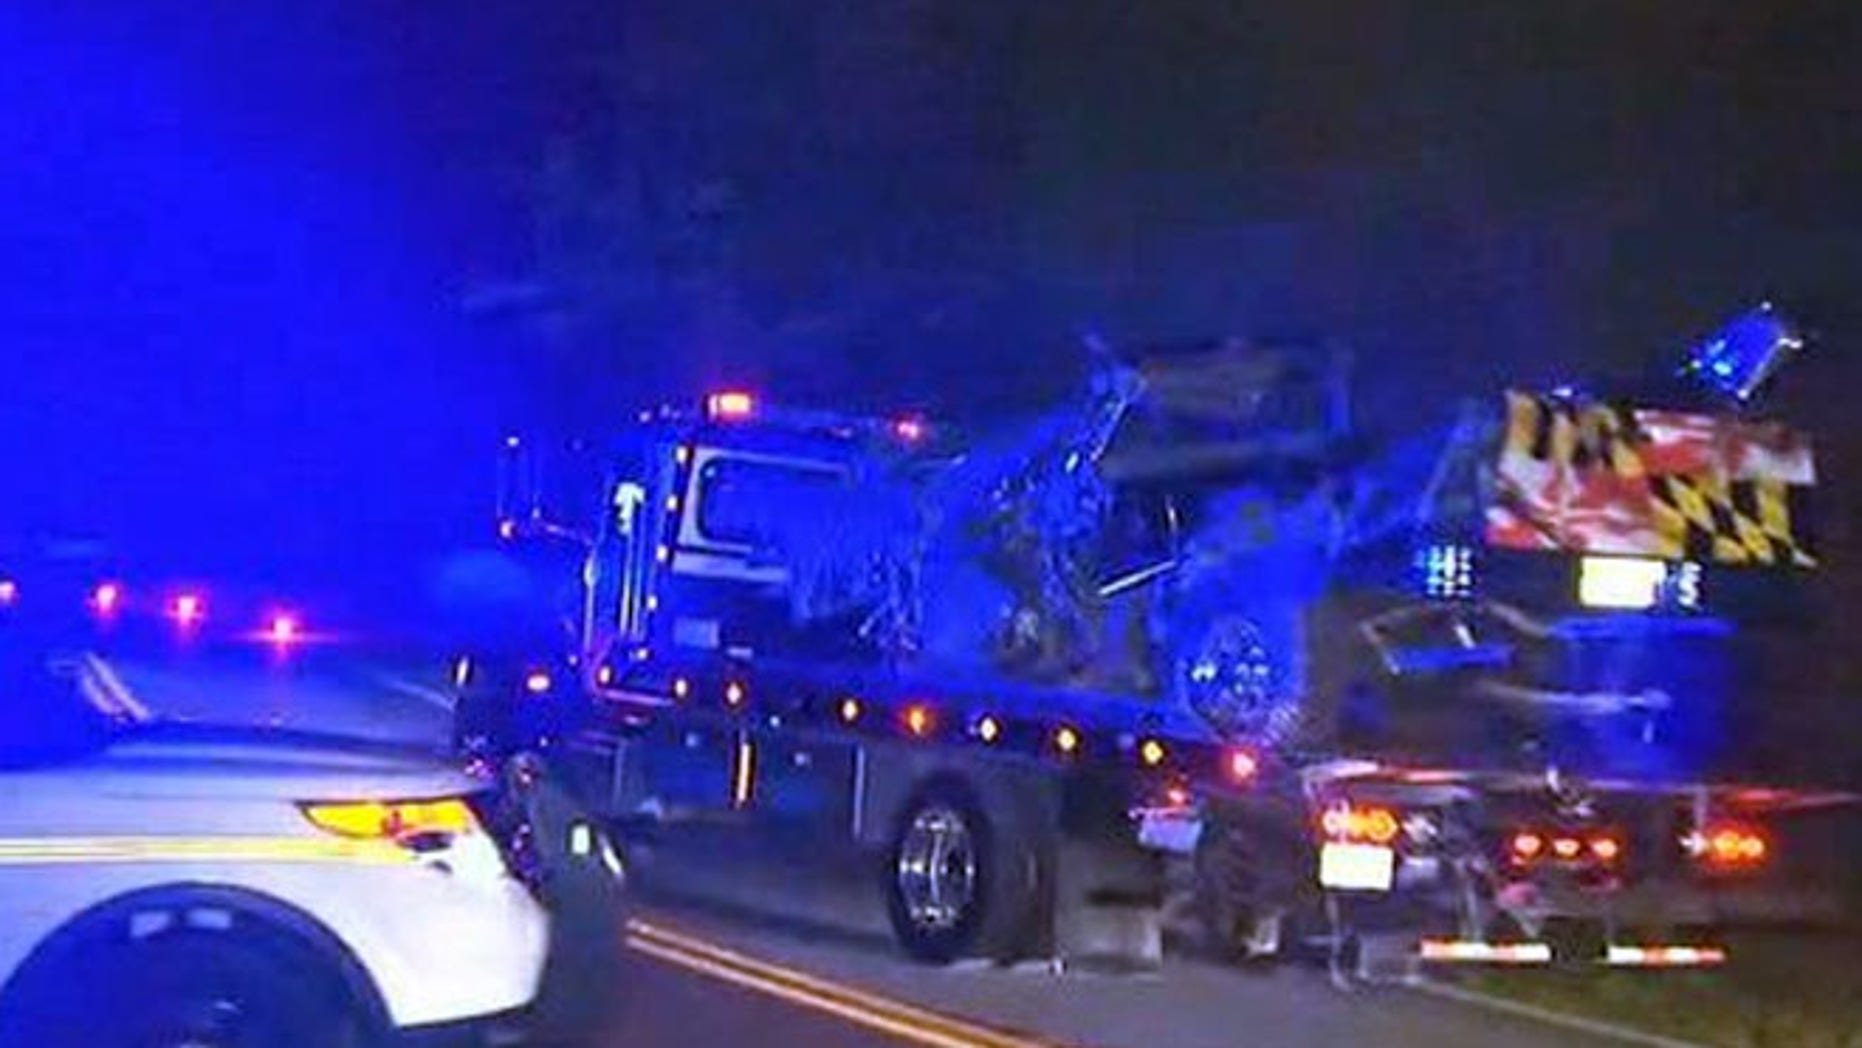 Three Maryland high school students died Tuesday night in a car crash.